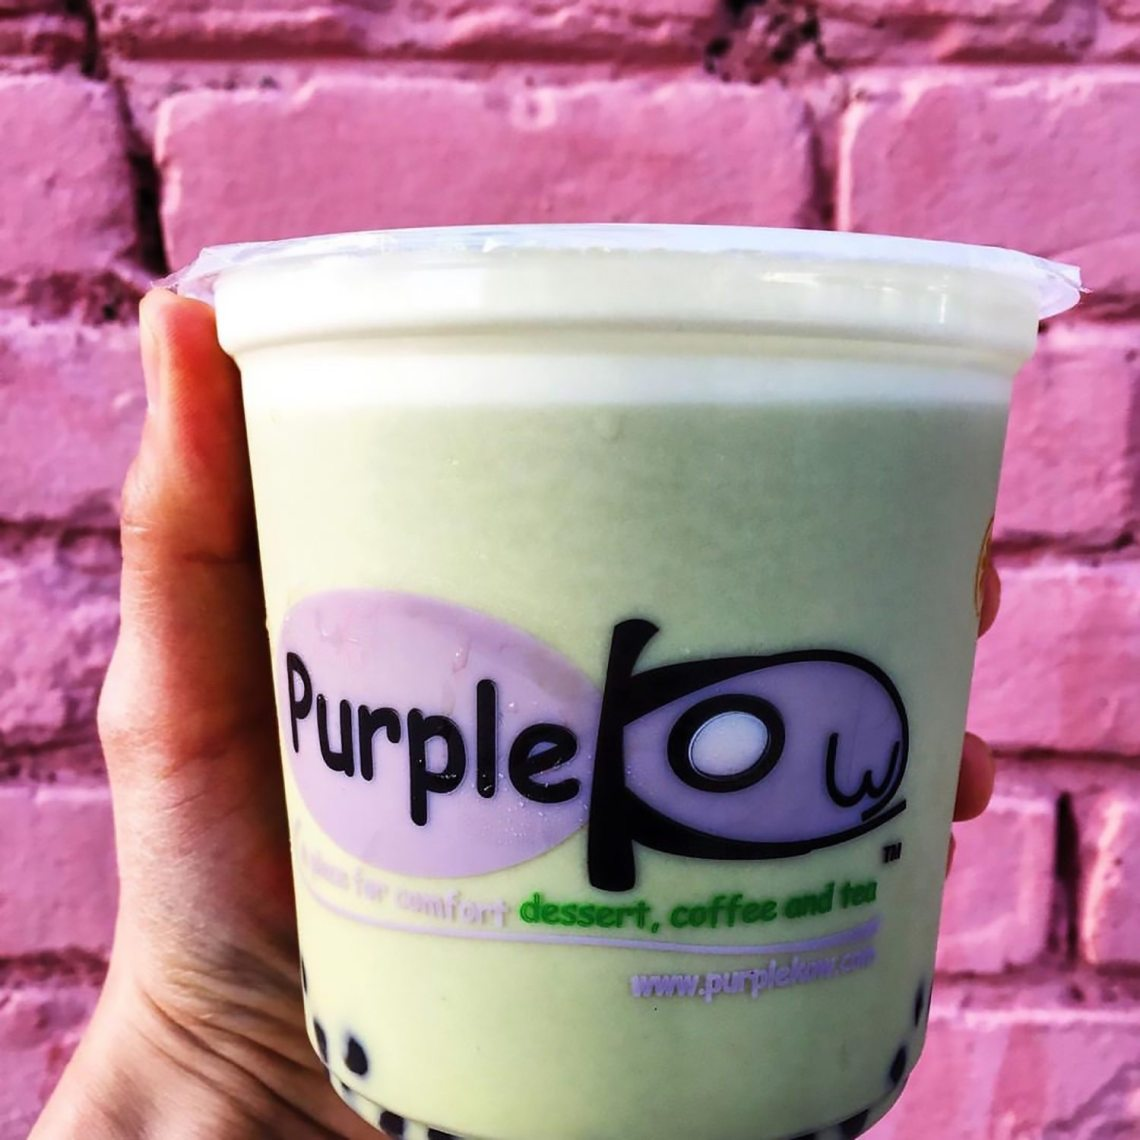 The Richmond's Purple Kow truly is a place for comfort, dessert, coffee, and tea. Photo: @sim.mie, Instagram.